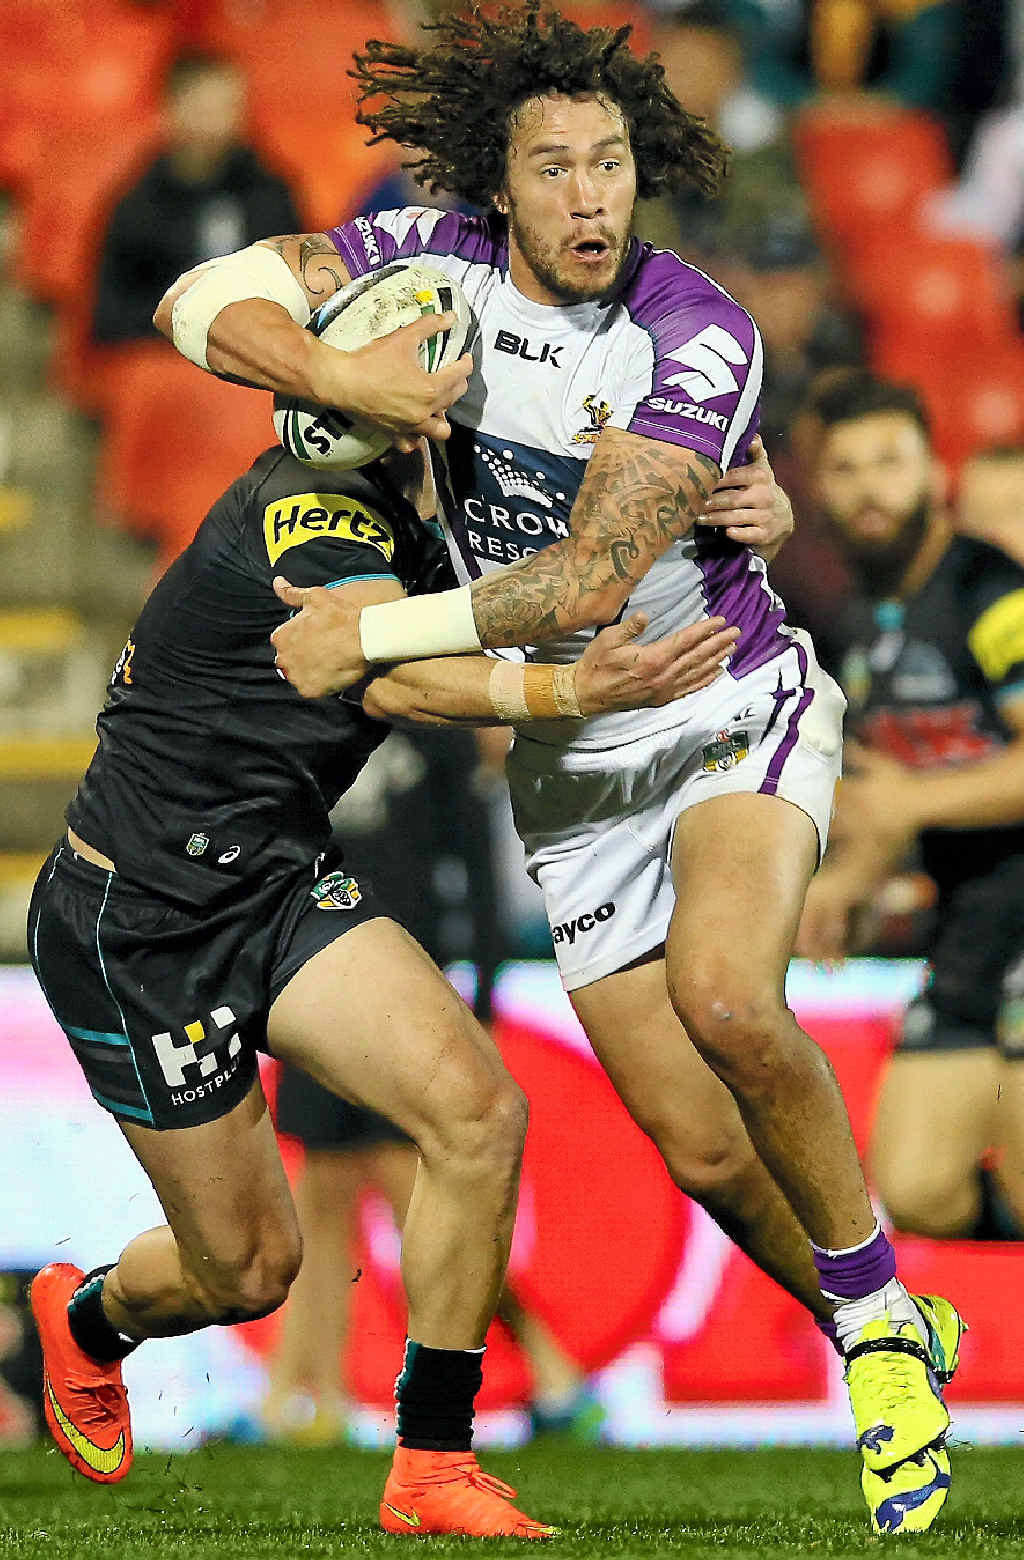 Kevin Proctor of the Storm on the run against the Penrith Panthers at Sportingbet Stadium in Sydney last night.